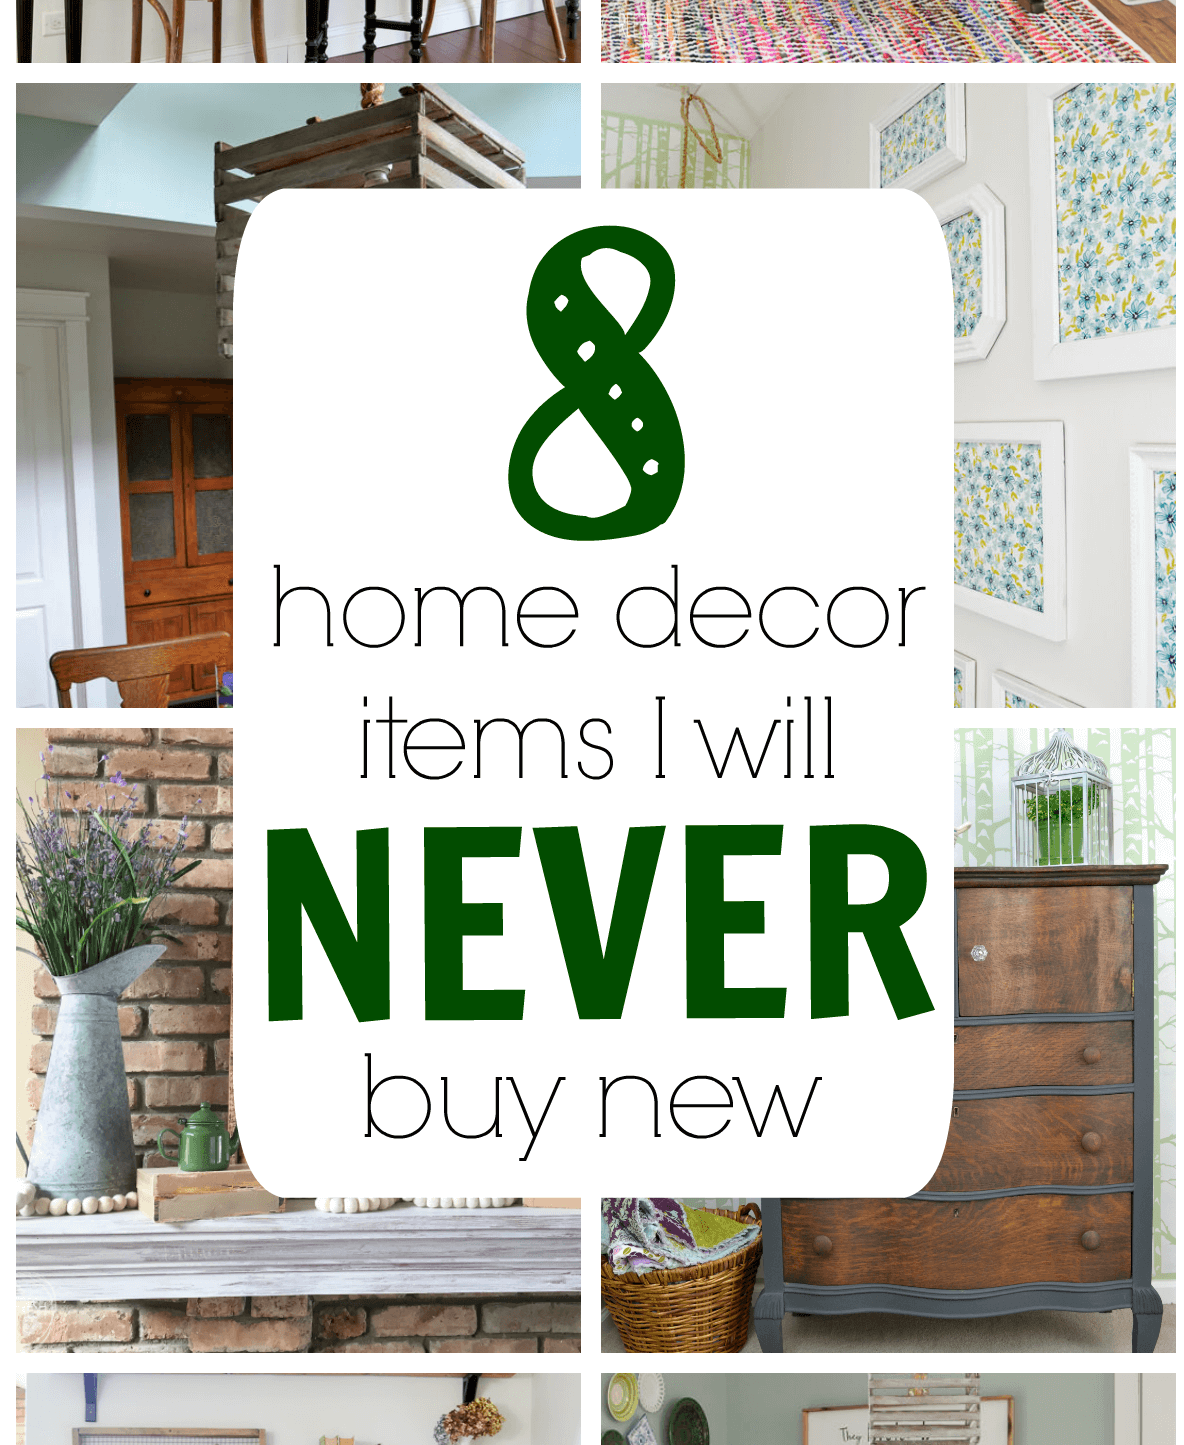 Second Home Decorating Ideas: Home Decor Items That I Never Buy New